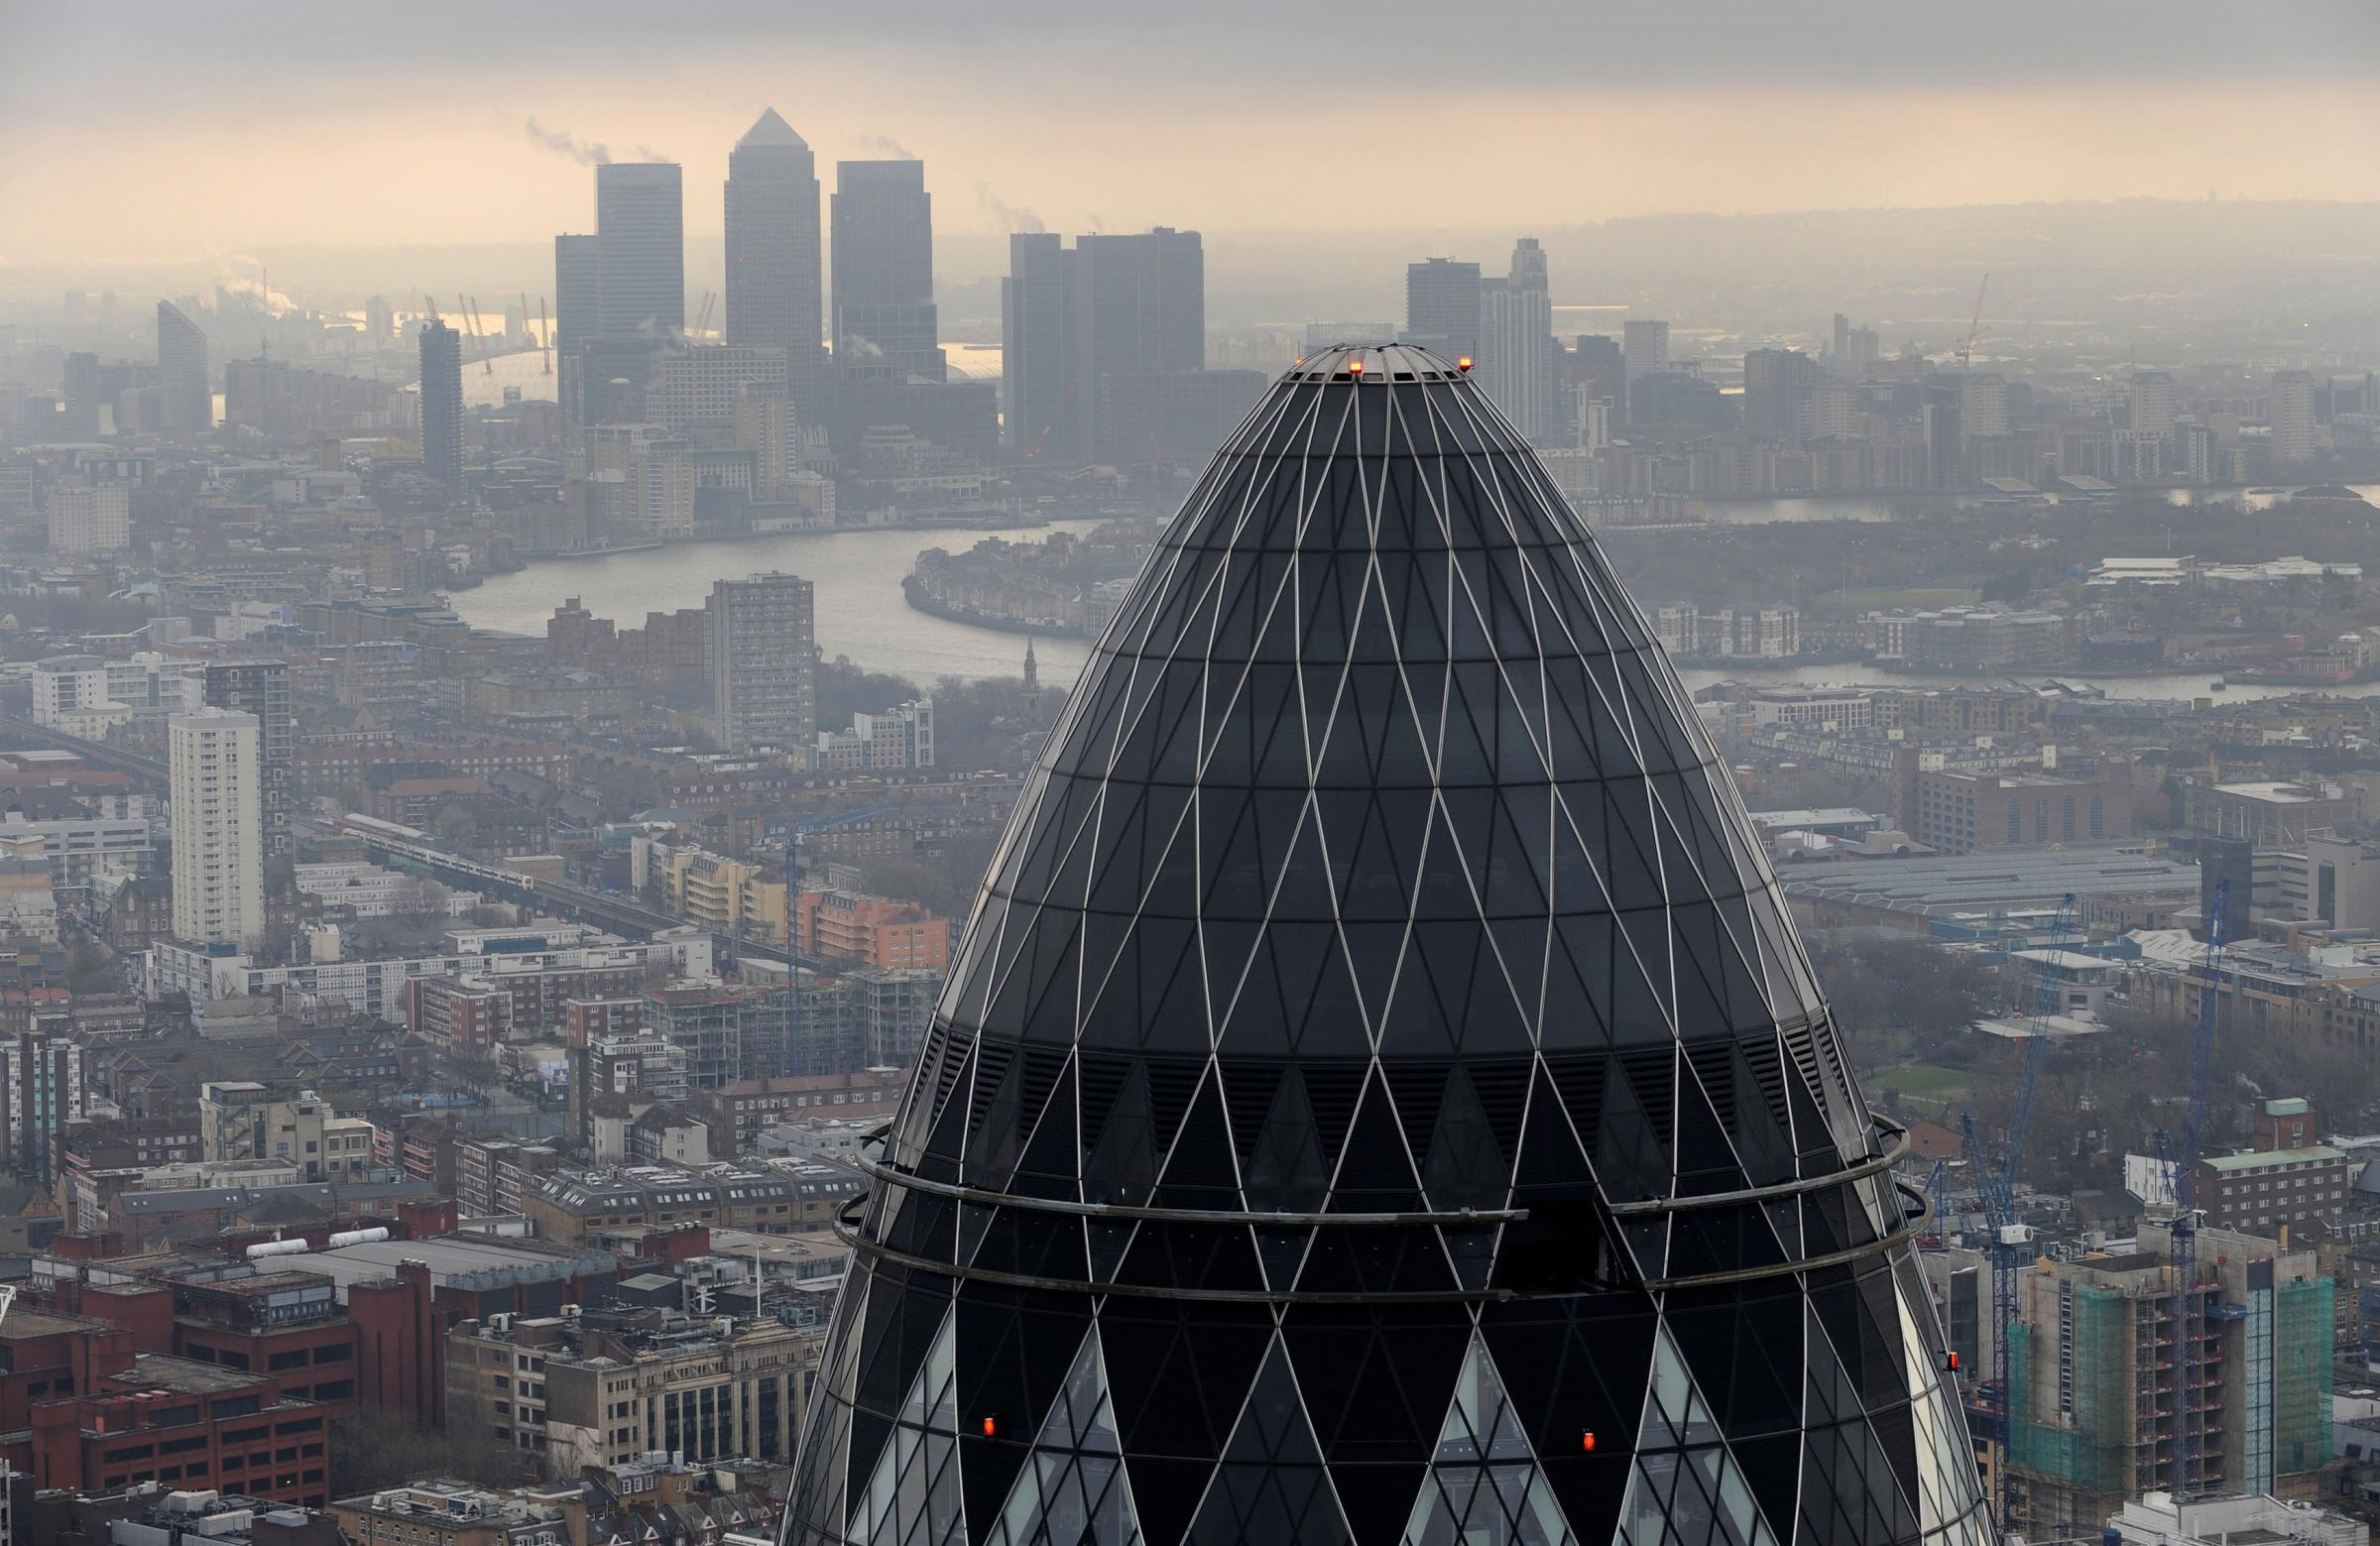 St Mary Axe also know as the 'Gherkin' and Canary Wharf at sunrise from the City of London. Picture: Stefan Rousseau/PA Wire